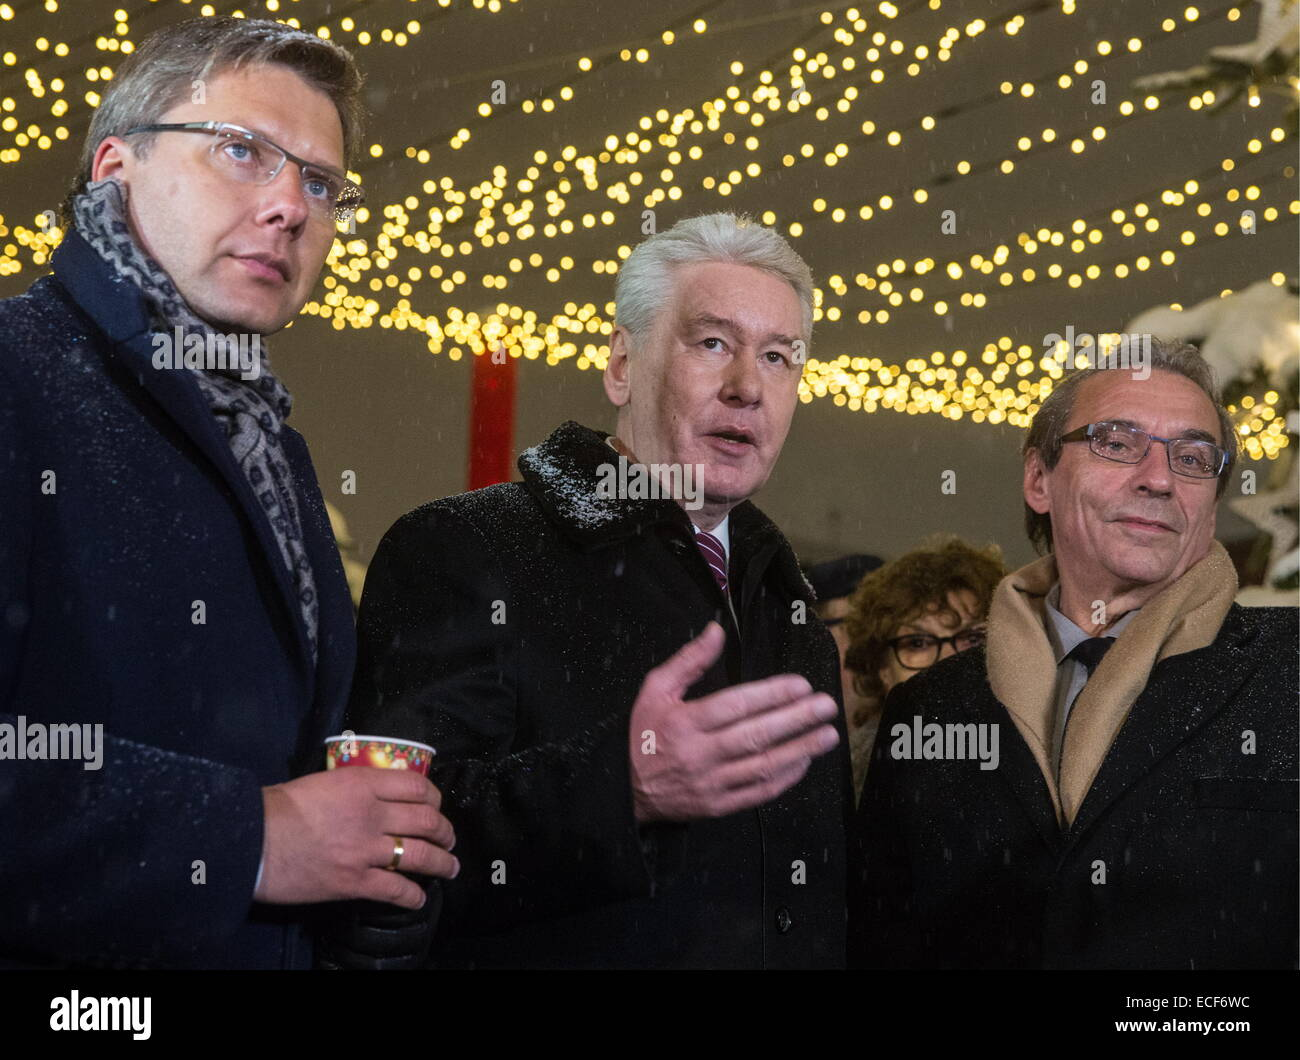 """Moscow, Russia. 12th Dec, 2014. Riga mayor Nils Usakovs and Moscow mayor Sergei Sobyanin and President of the Strasbourg-Ortenau Eurodistrict, Roland Ries (L to R) at the opening ceremony for """"A Journey to Christmas"""" winter festival in Moscow. © Ilya Pitalev/TASS/Alamy Live News Stock Photo"""